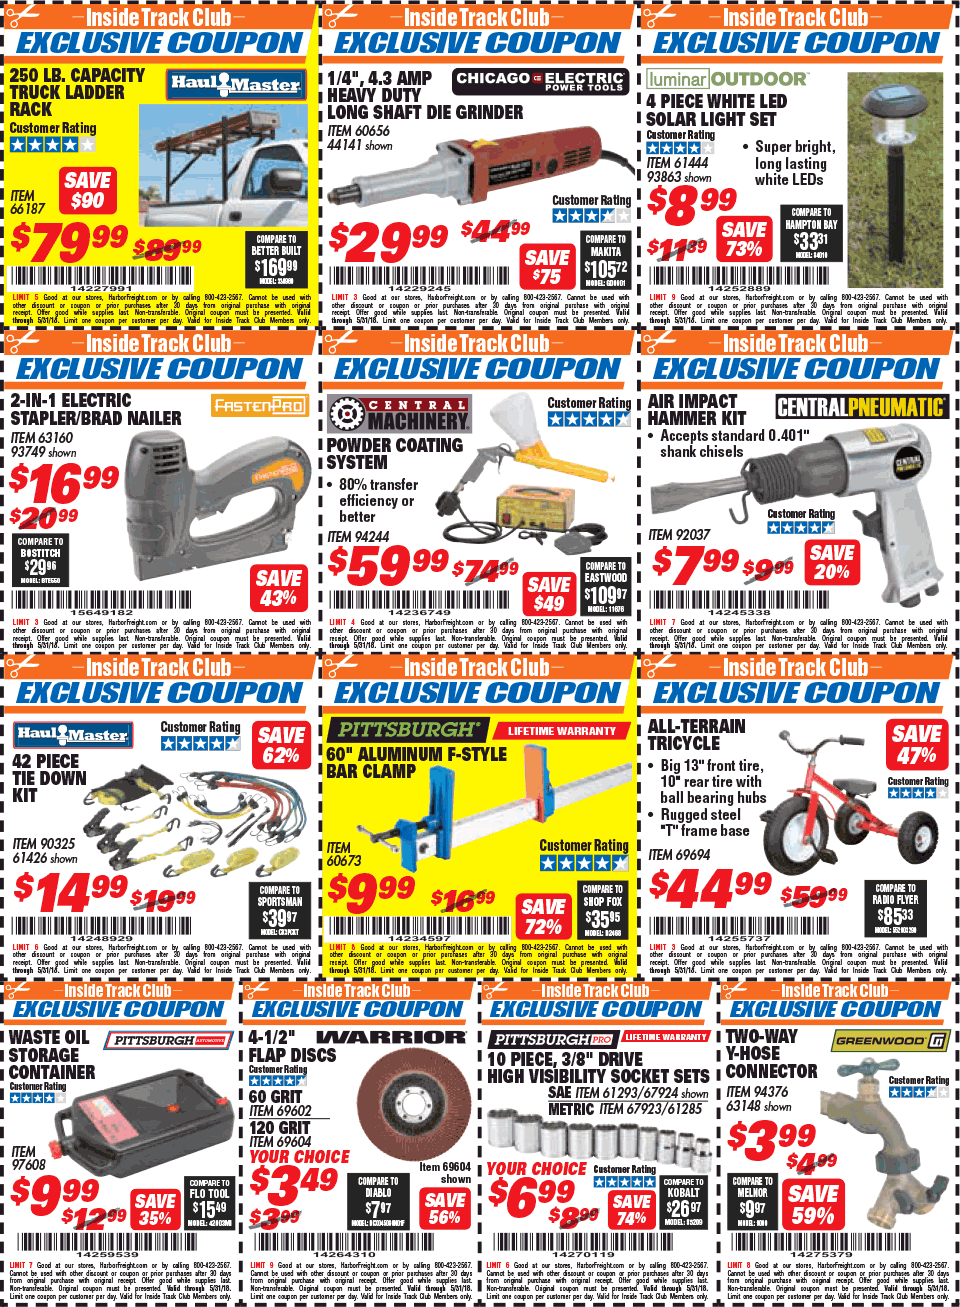 A database of the best coupons for Harbor Freight Tools.